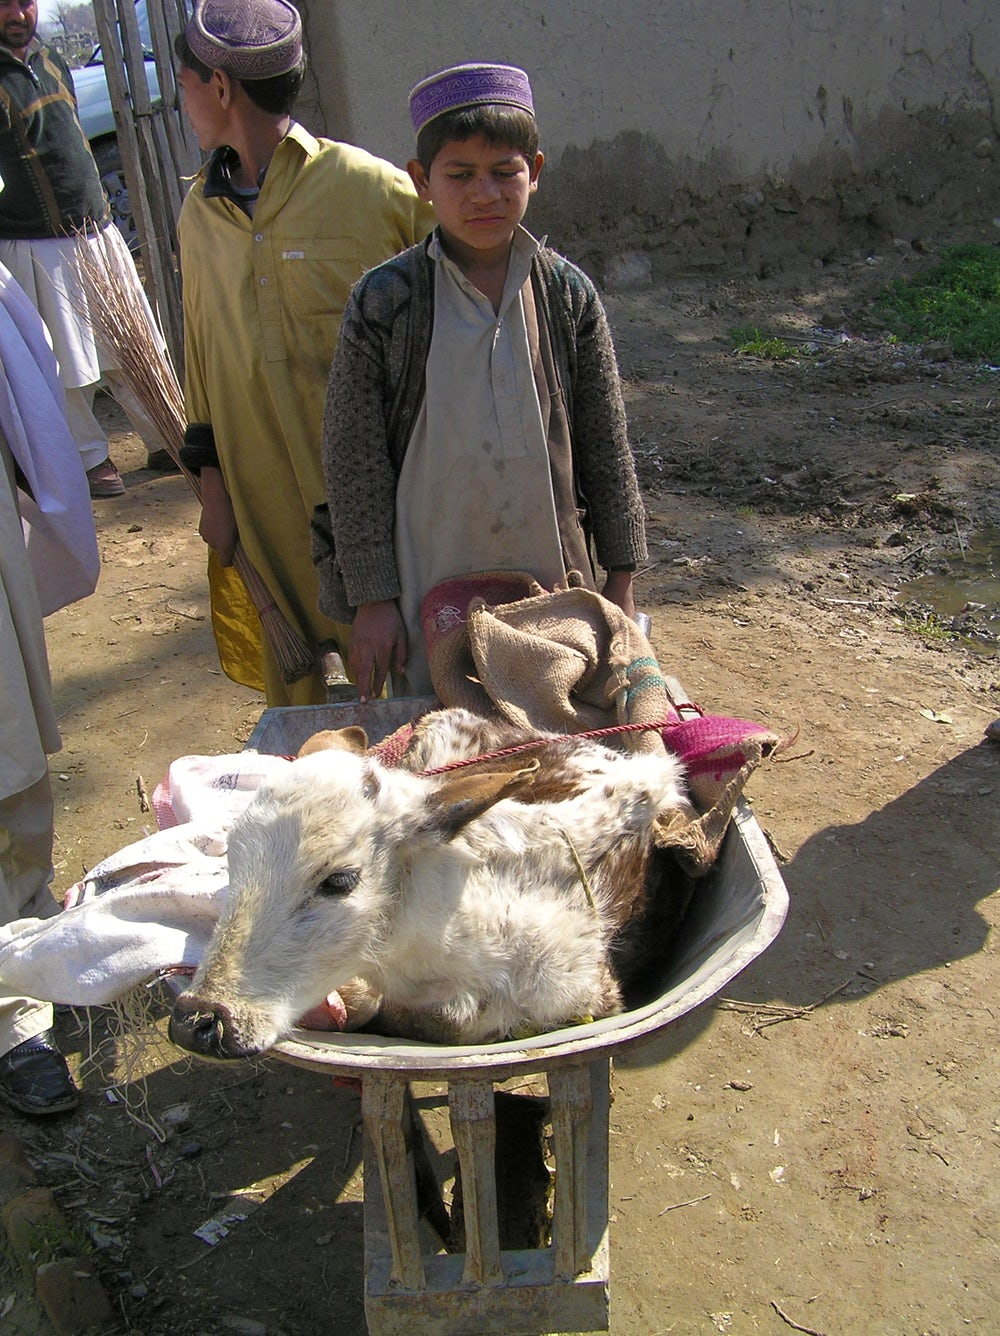 A young boy brings his calf with diarrhea to the veterinary field unit (VFU) in a wheel barrow for treatment. Such a calf represents an extremely valuable asset for a poor farm family in Afghanistan and reliable access to veterinary care at a VFU is greatly appreciated (caption and photo by David Sherman).